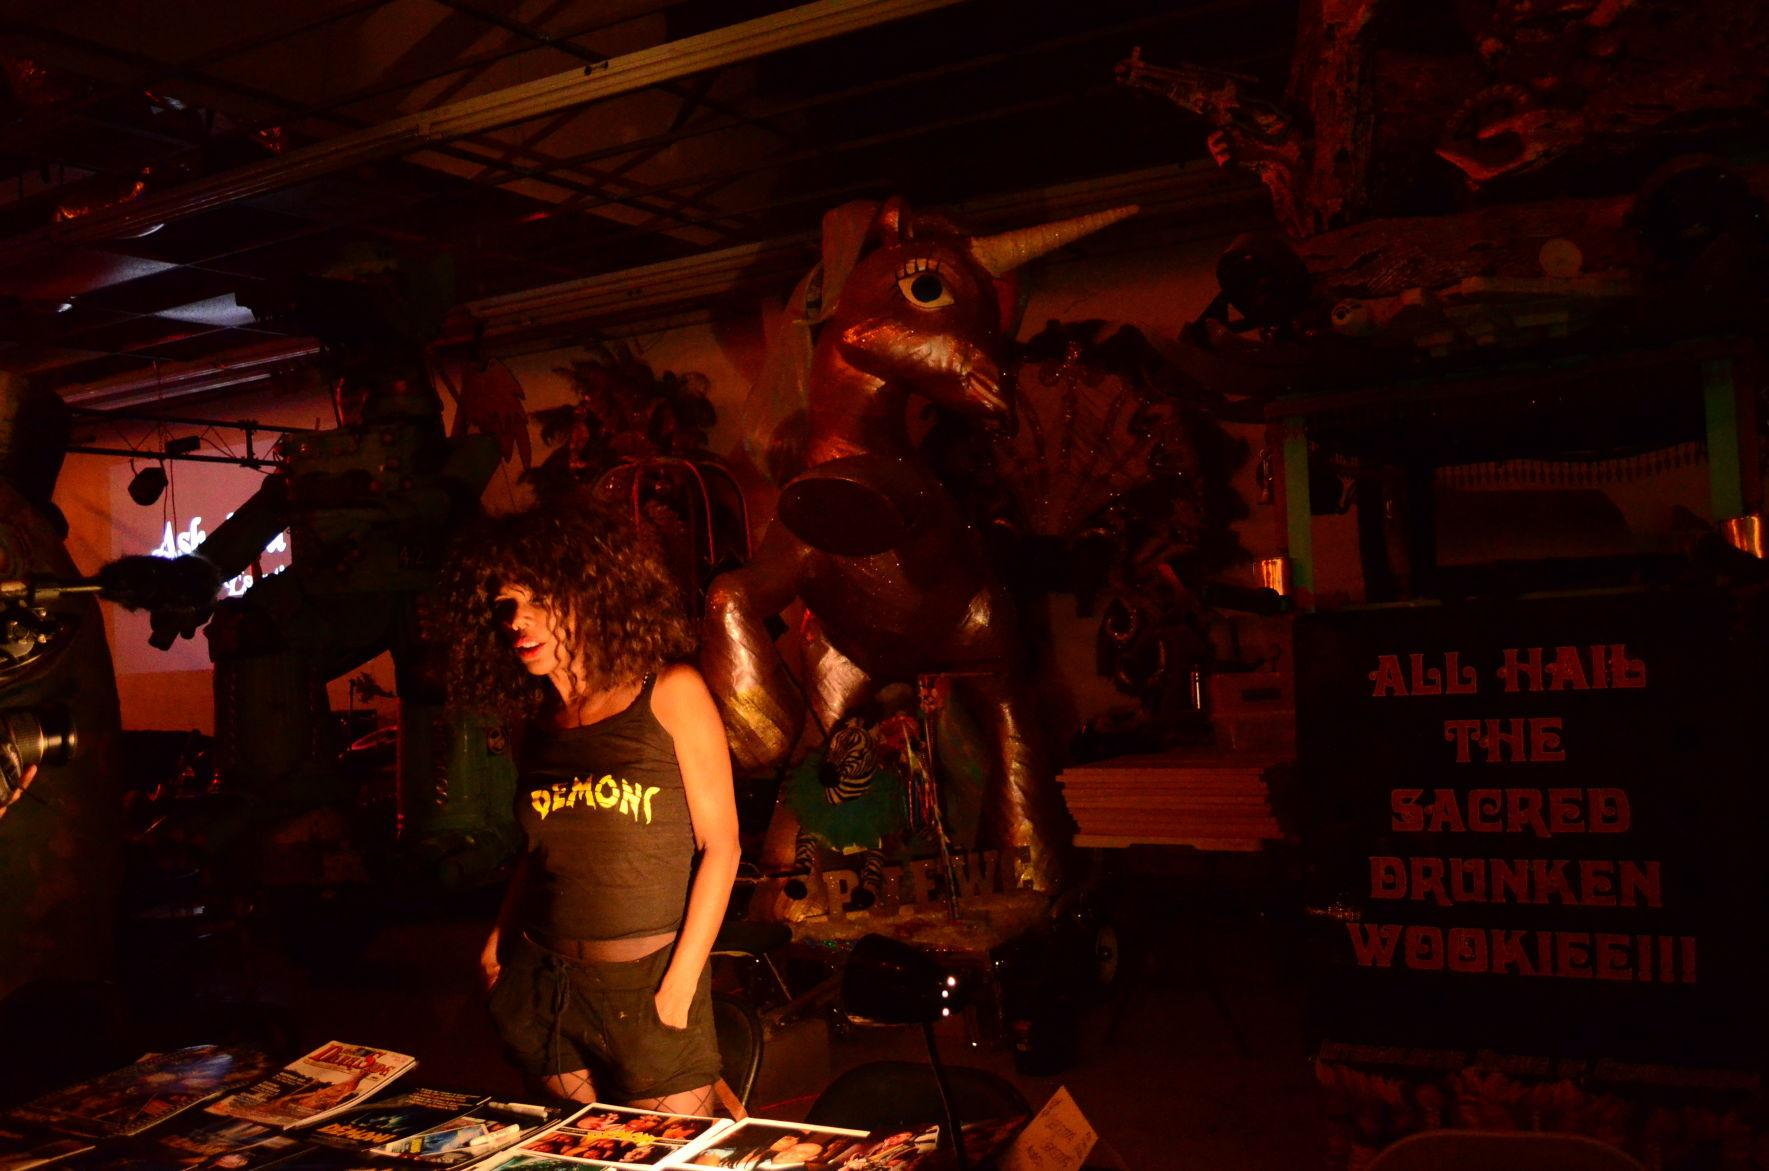 NOLA Horror Film Fest attracted globally recognized talent such as actress Geretta Geretta (above).